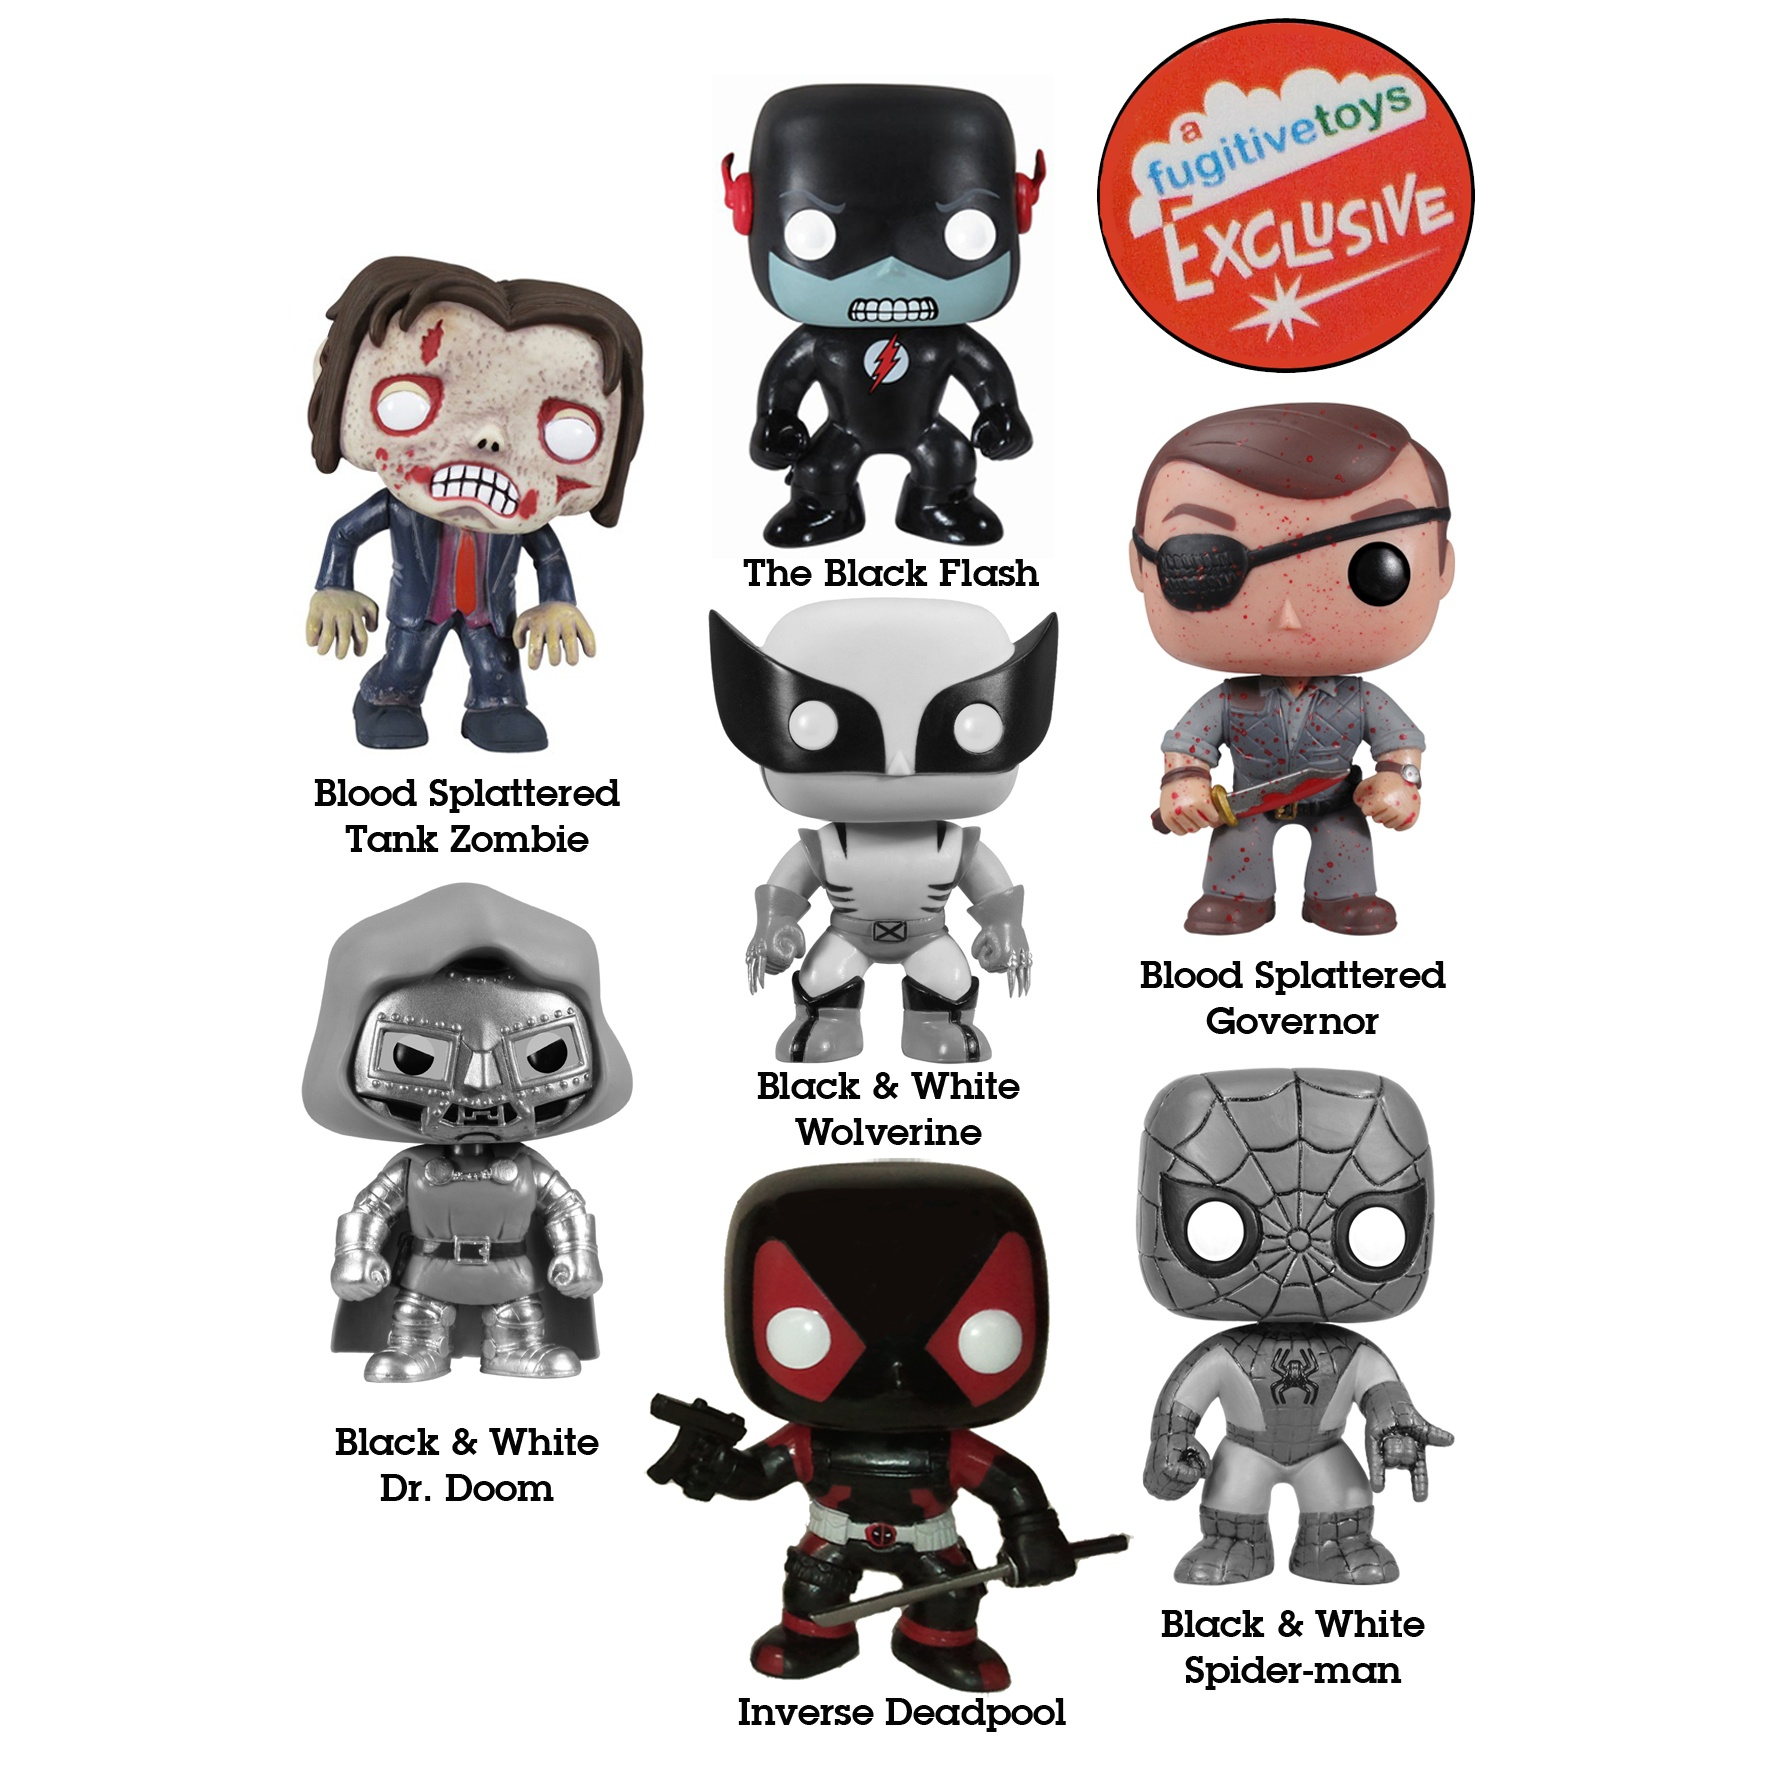 http://news.toyark.com/wp-content/uploads/sites/4/2013/06/Fugitive-Toys-Exclusive-Pop-Vinyl-Figures.jpg